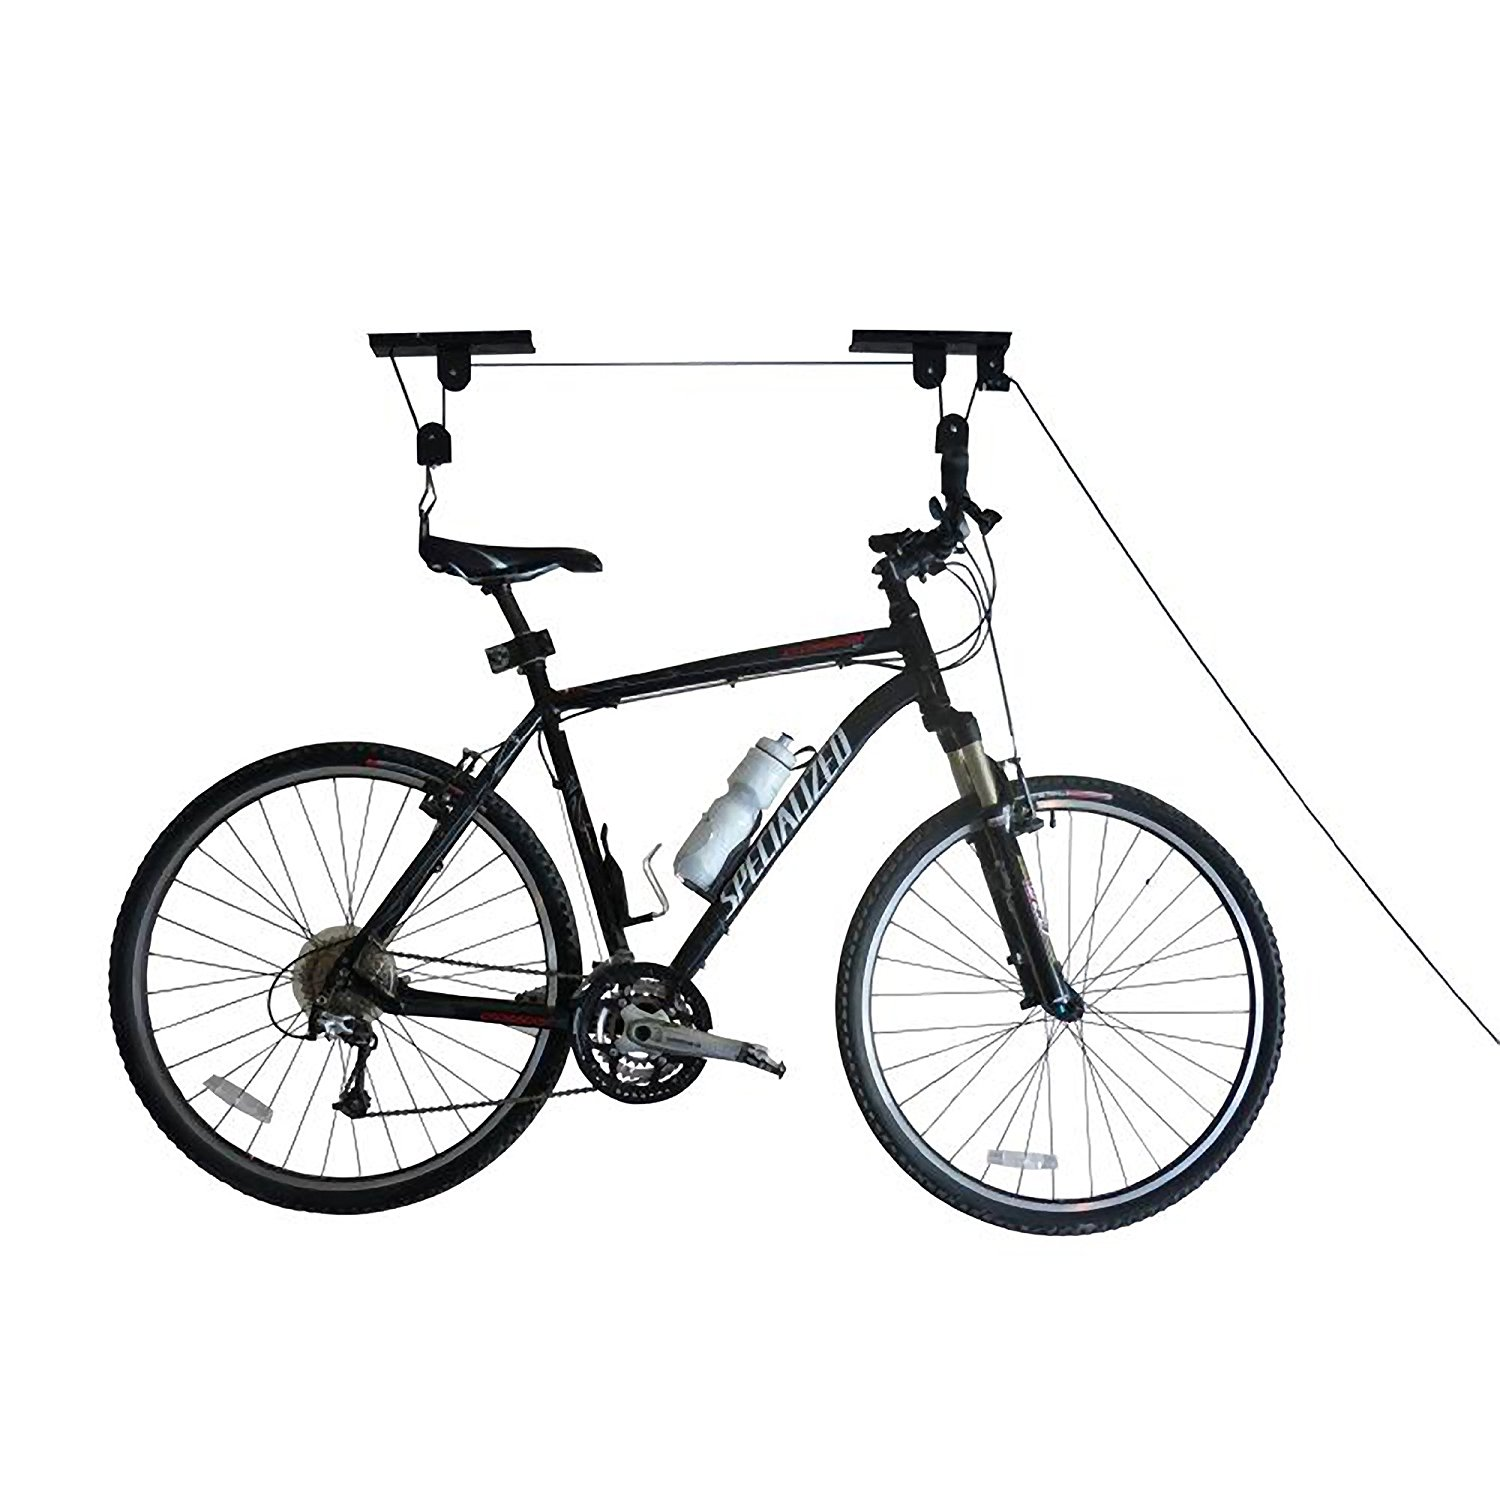 Rad Cycle Products Bike Lift Hoist Garage Mountain Bicycle